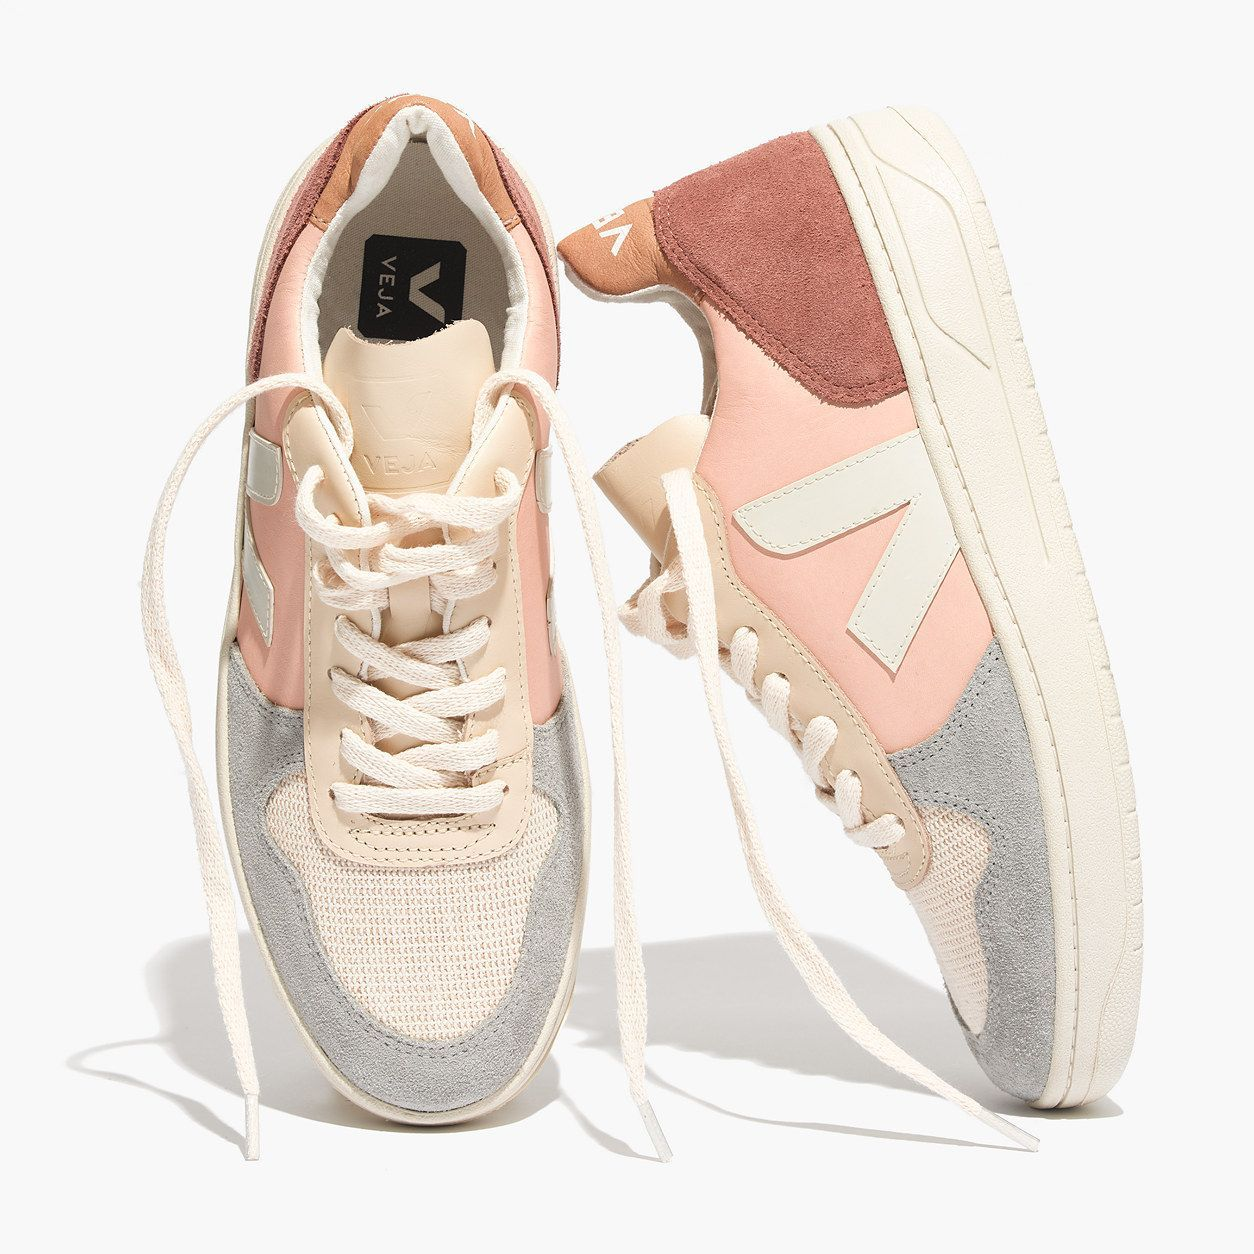 c109110b837b Madewell Womens Veja V-10 Sneakers In Colorblock | Products | Shoes ...